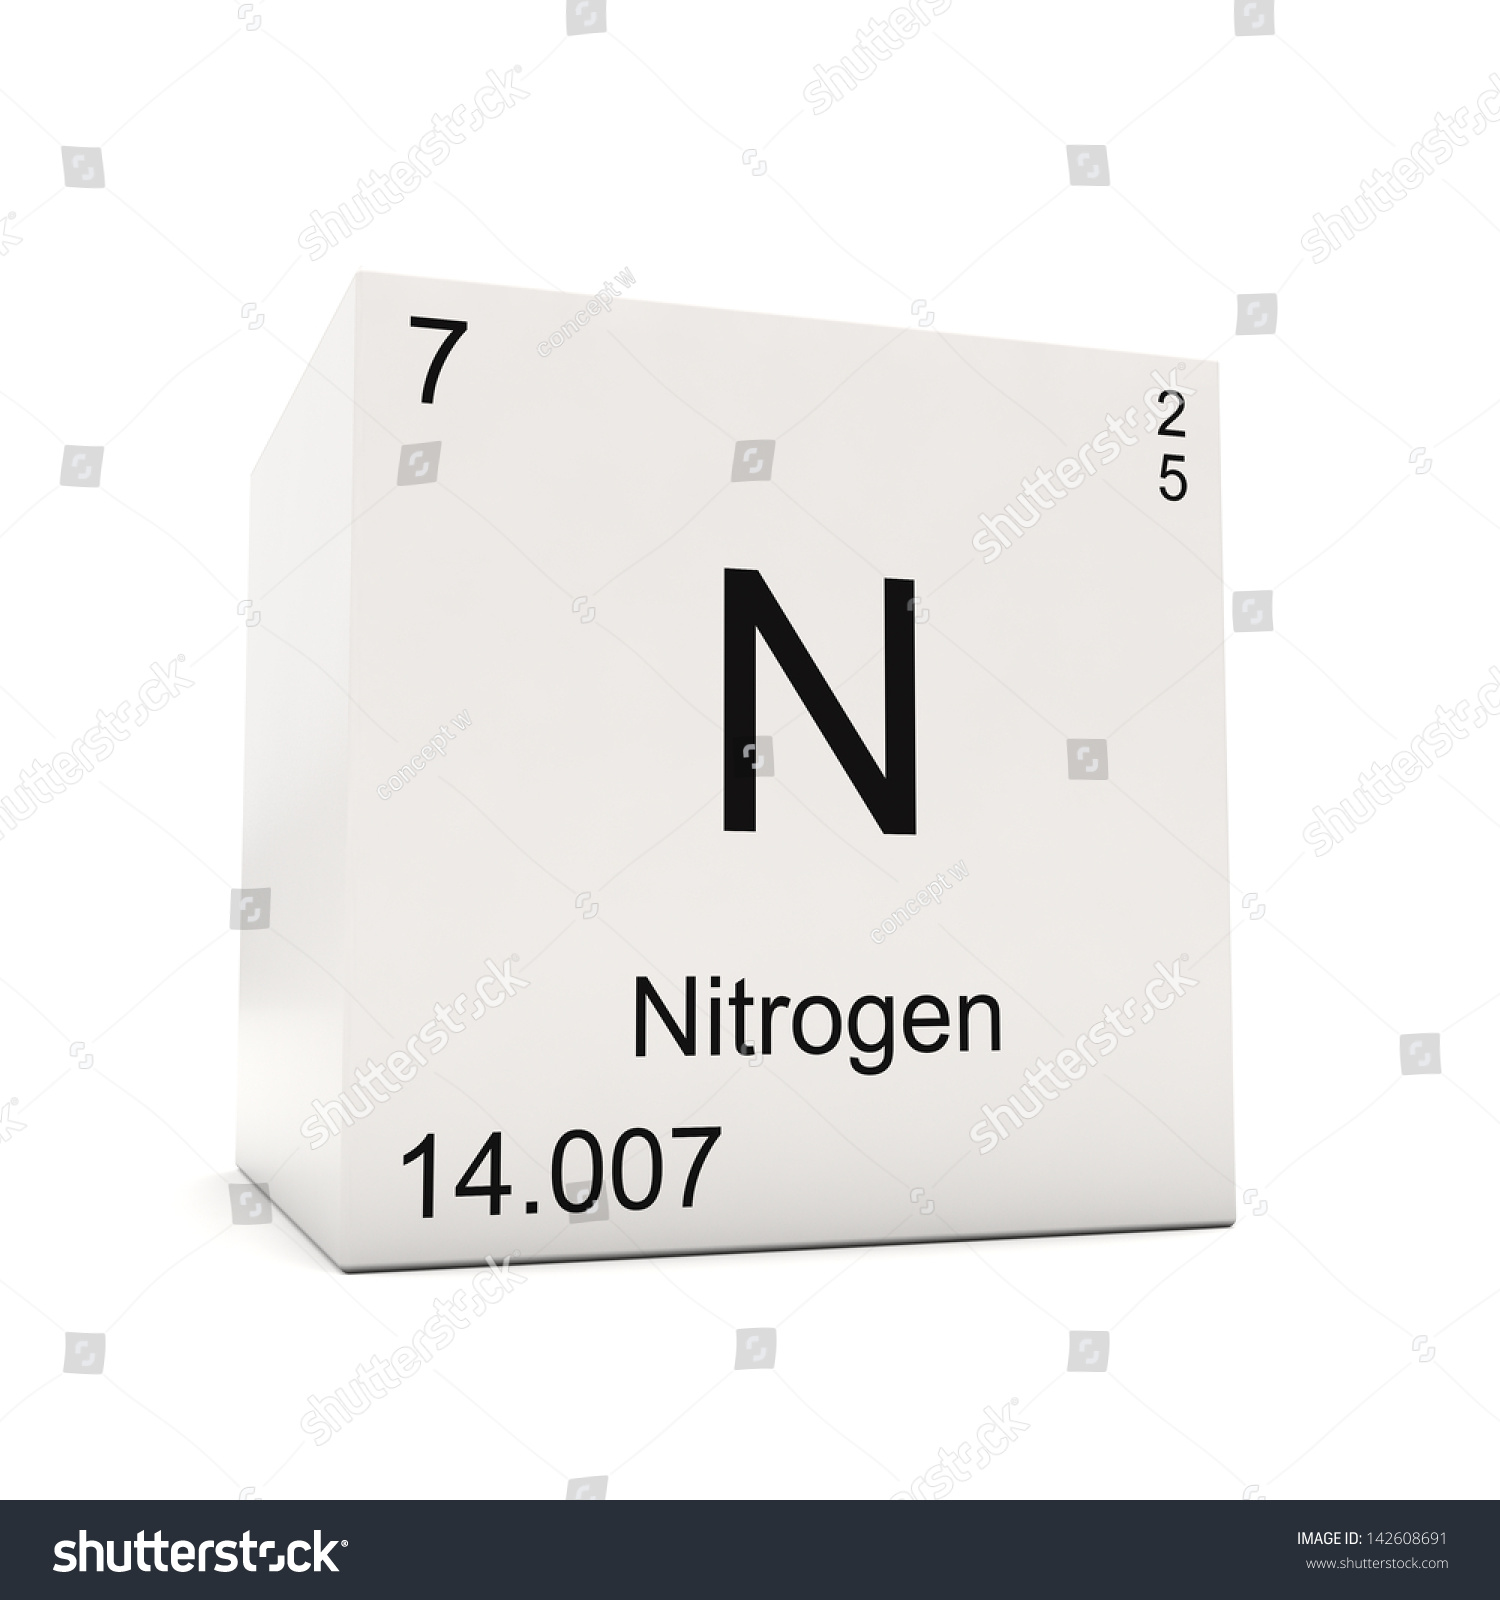 Cube nitrogen element periodic table isolated stock illustration cube of nitrogen element of the periodic table isolated on white background gamestrikefo Gallery